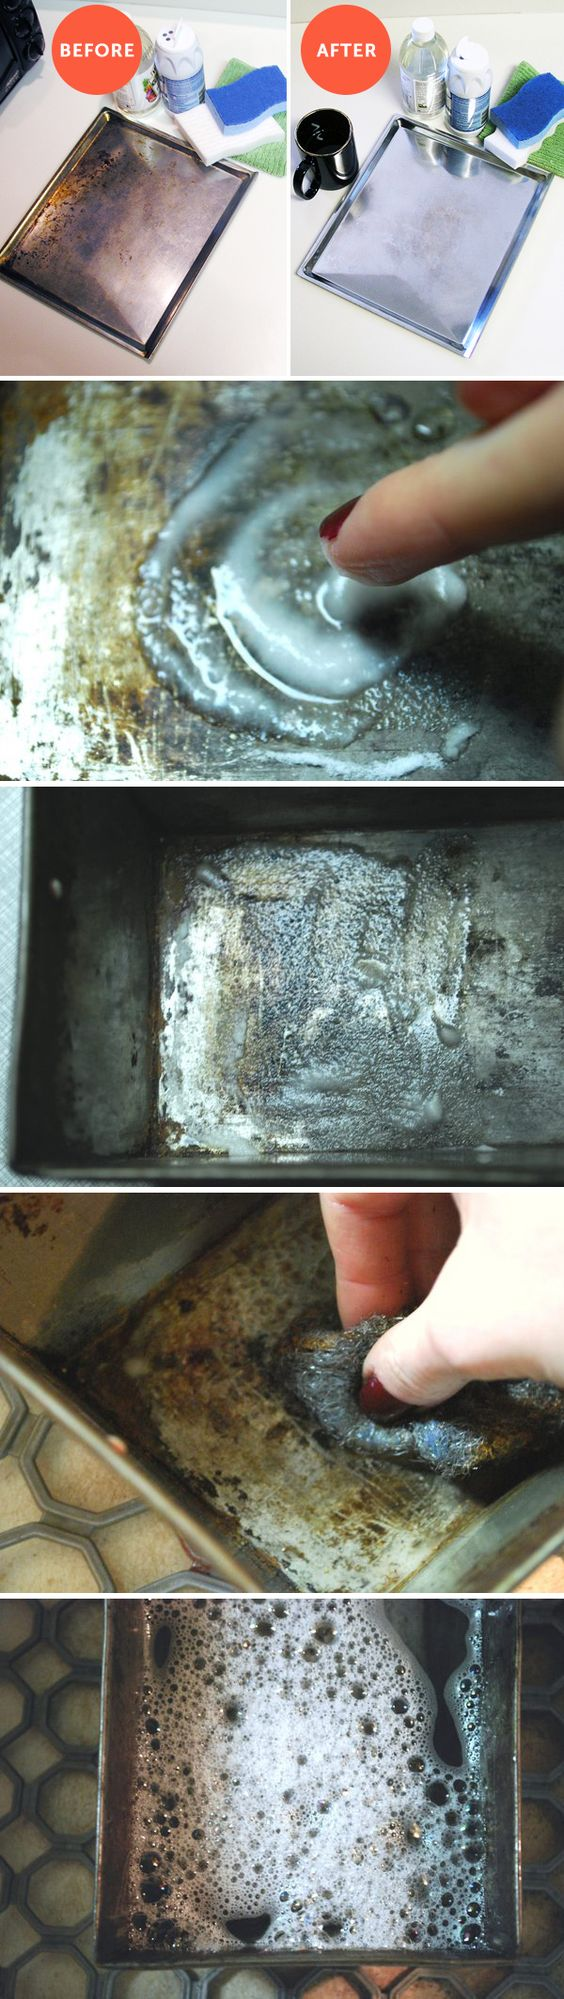 3 ways to get your bake ware squeaky clean! How to remove rust stains in 6 steps, general stains in 5, and stains from aluminum bake ware with vinegar in 4 steps! A total kitchen hack you must try! http://www.ehow.com/how_6227517_remove-stains-bakeware.html?utm_source=pinterest.com&utm_medium=referral&utm_content=article&utm_campaign=fanpage: